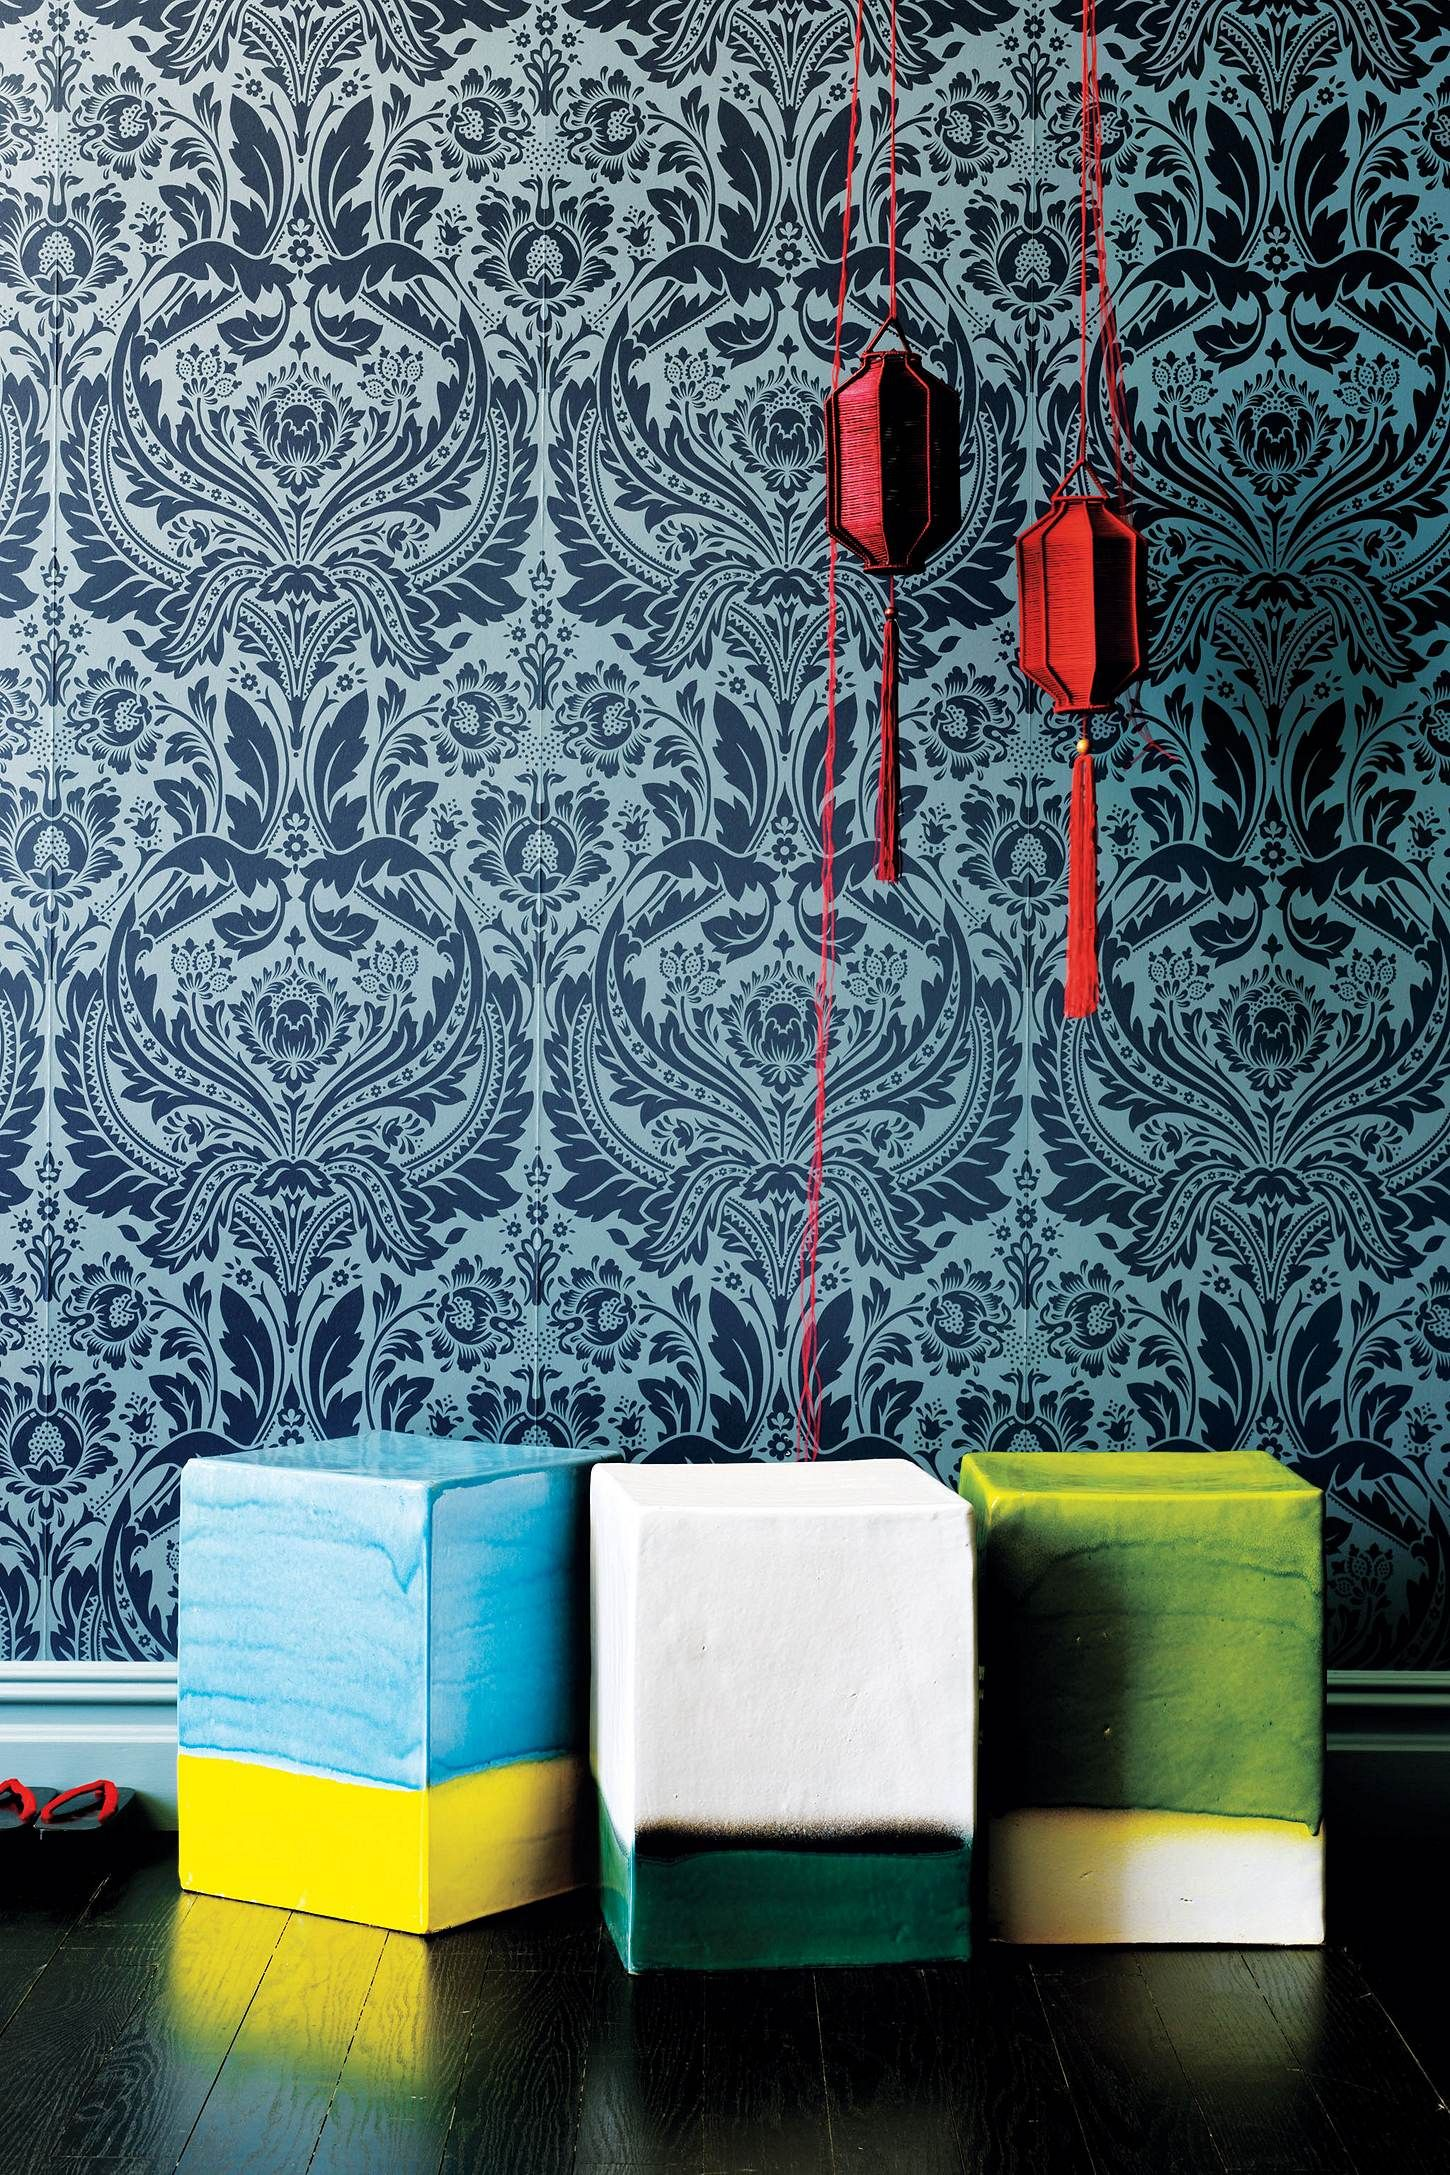 Cool Wallpaper Rooms Others Ceramic Stool